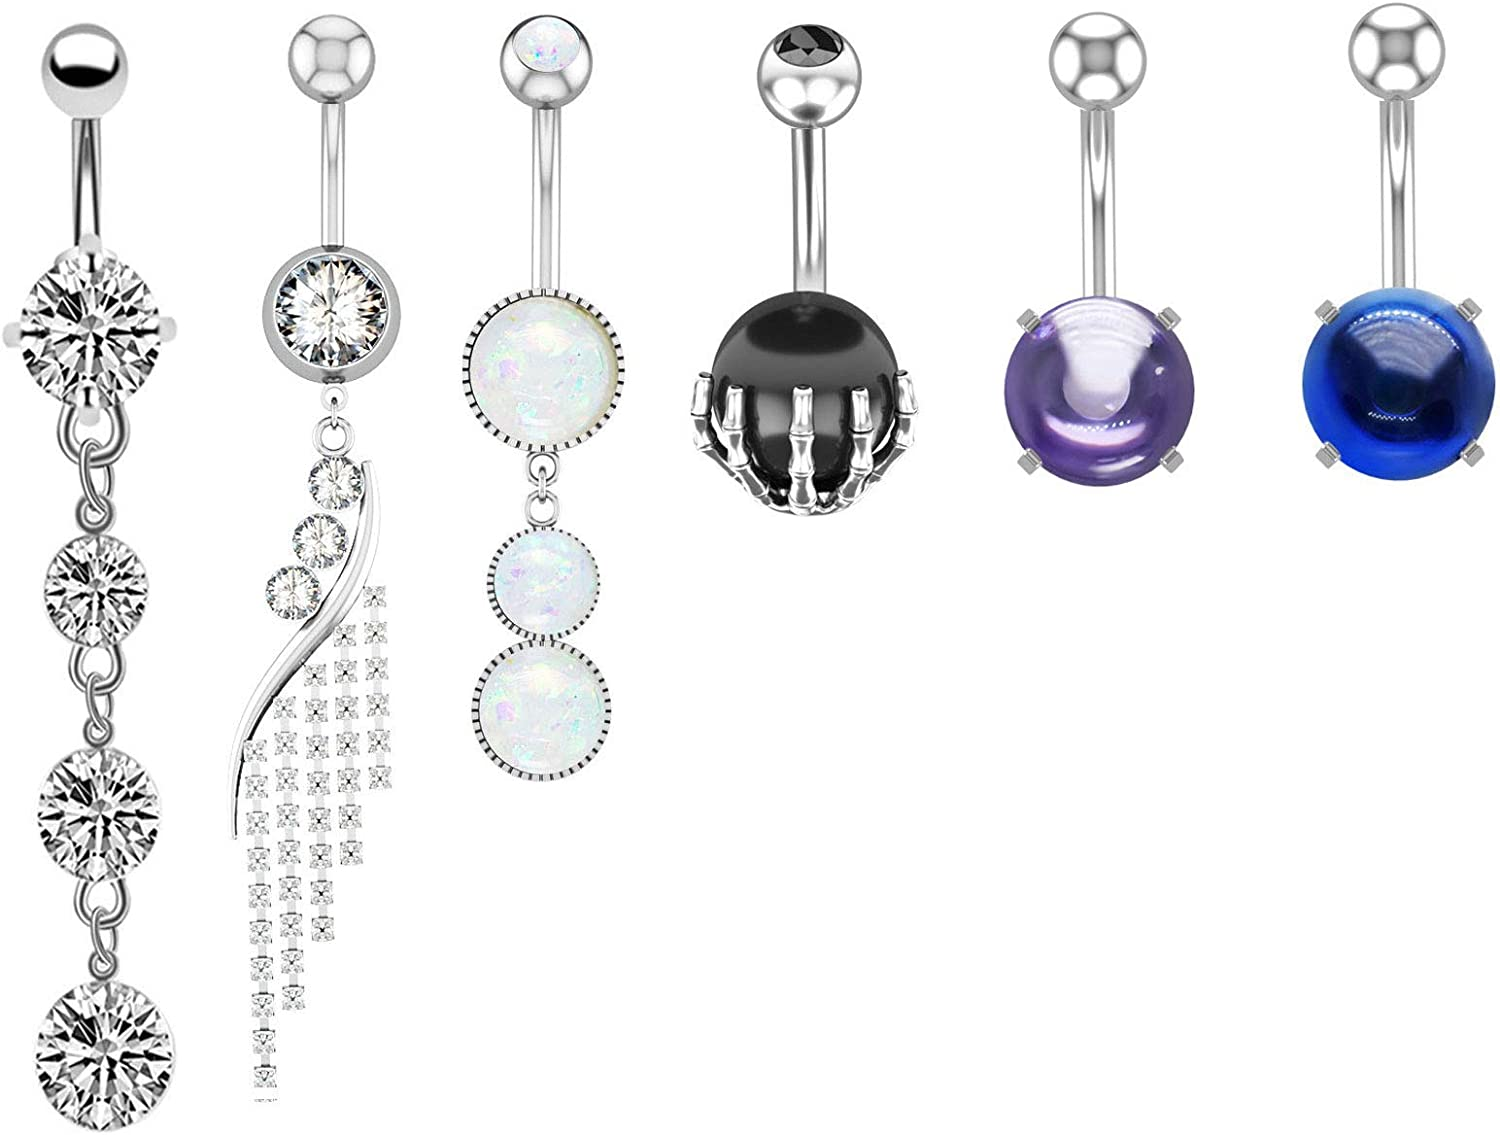 JDXN 6 Pcs 14G Stainless Steel Dangle Belly Button Rings Screw Navel Barbell Stud Body Piercing Jewelry for Women